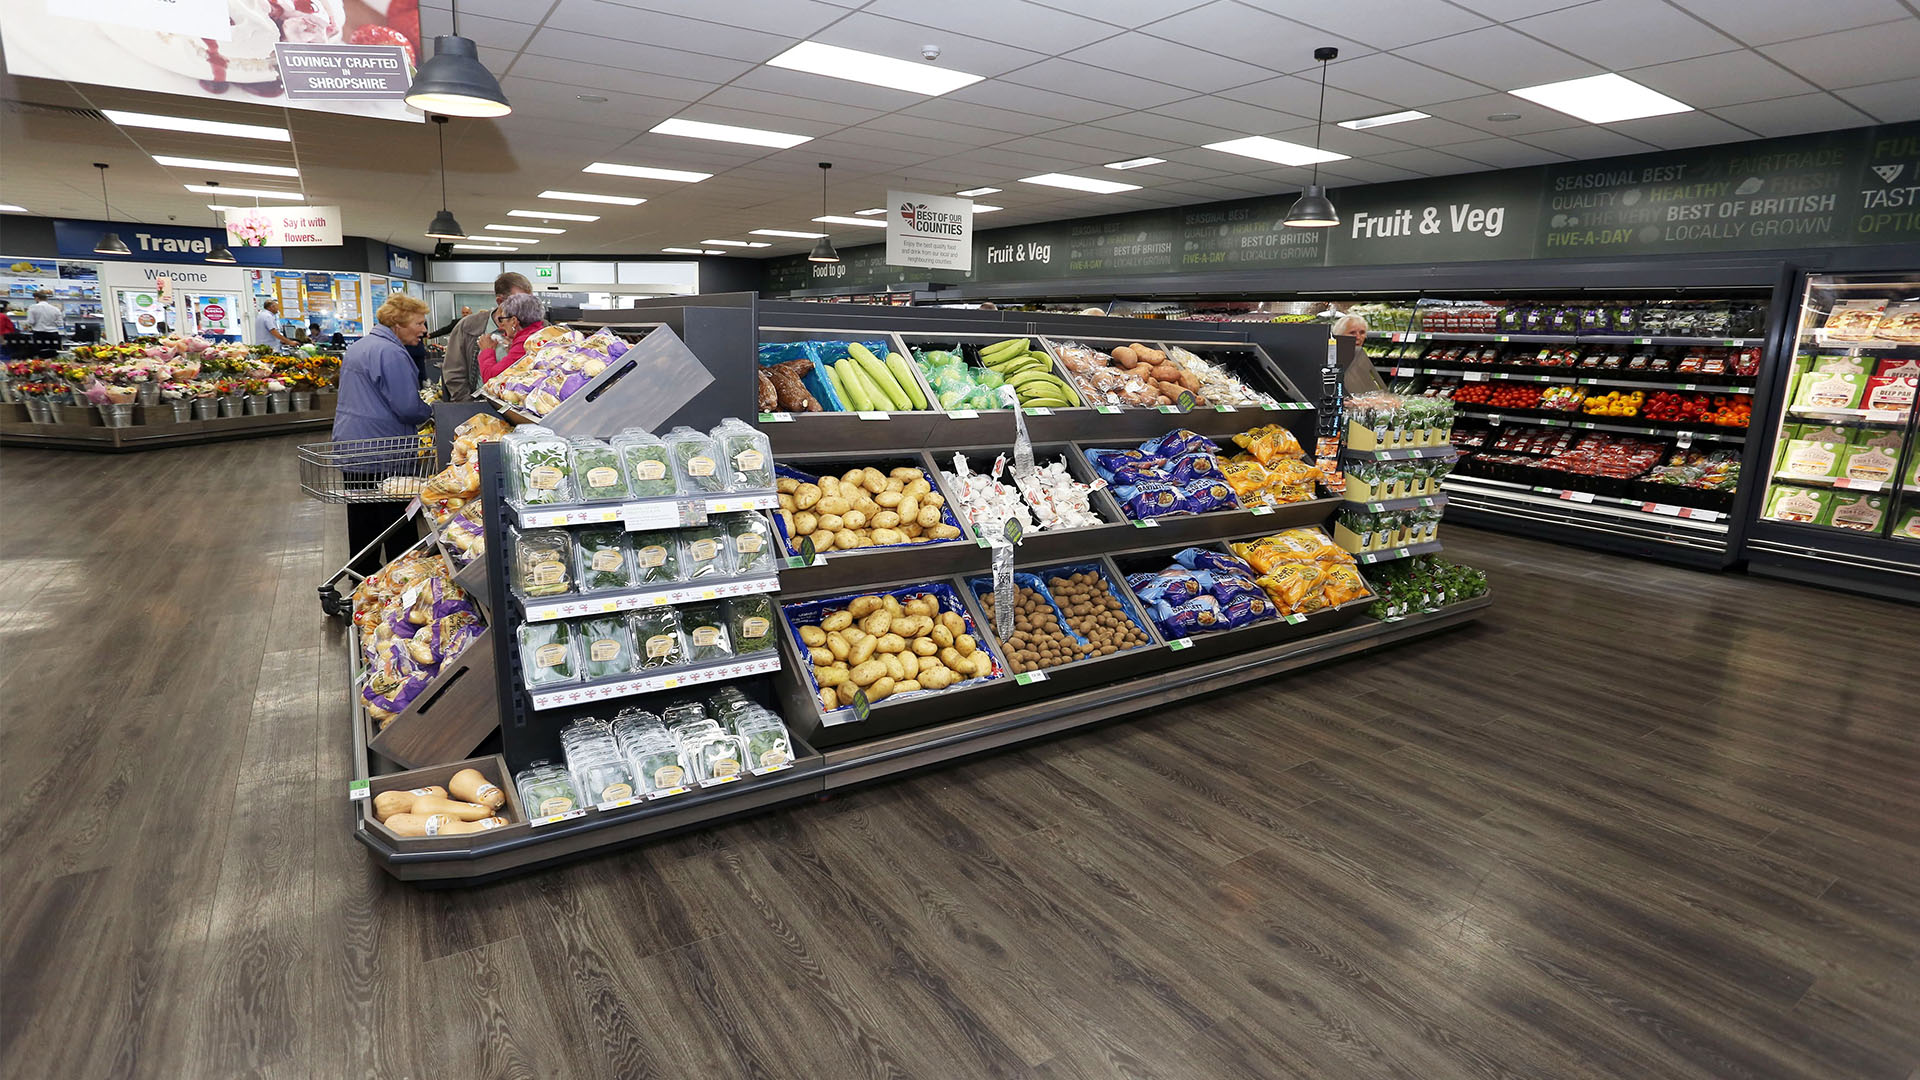 Midcounties Co-operative Grocery Store Interior